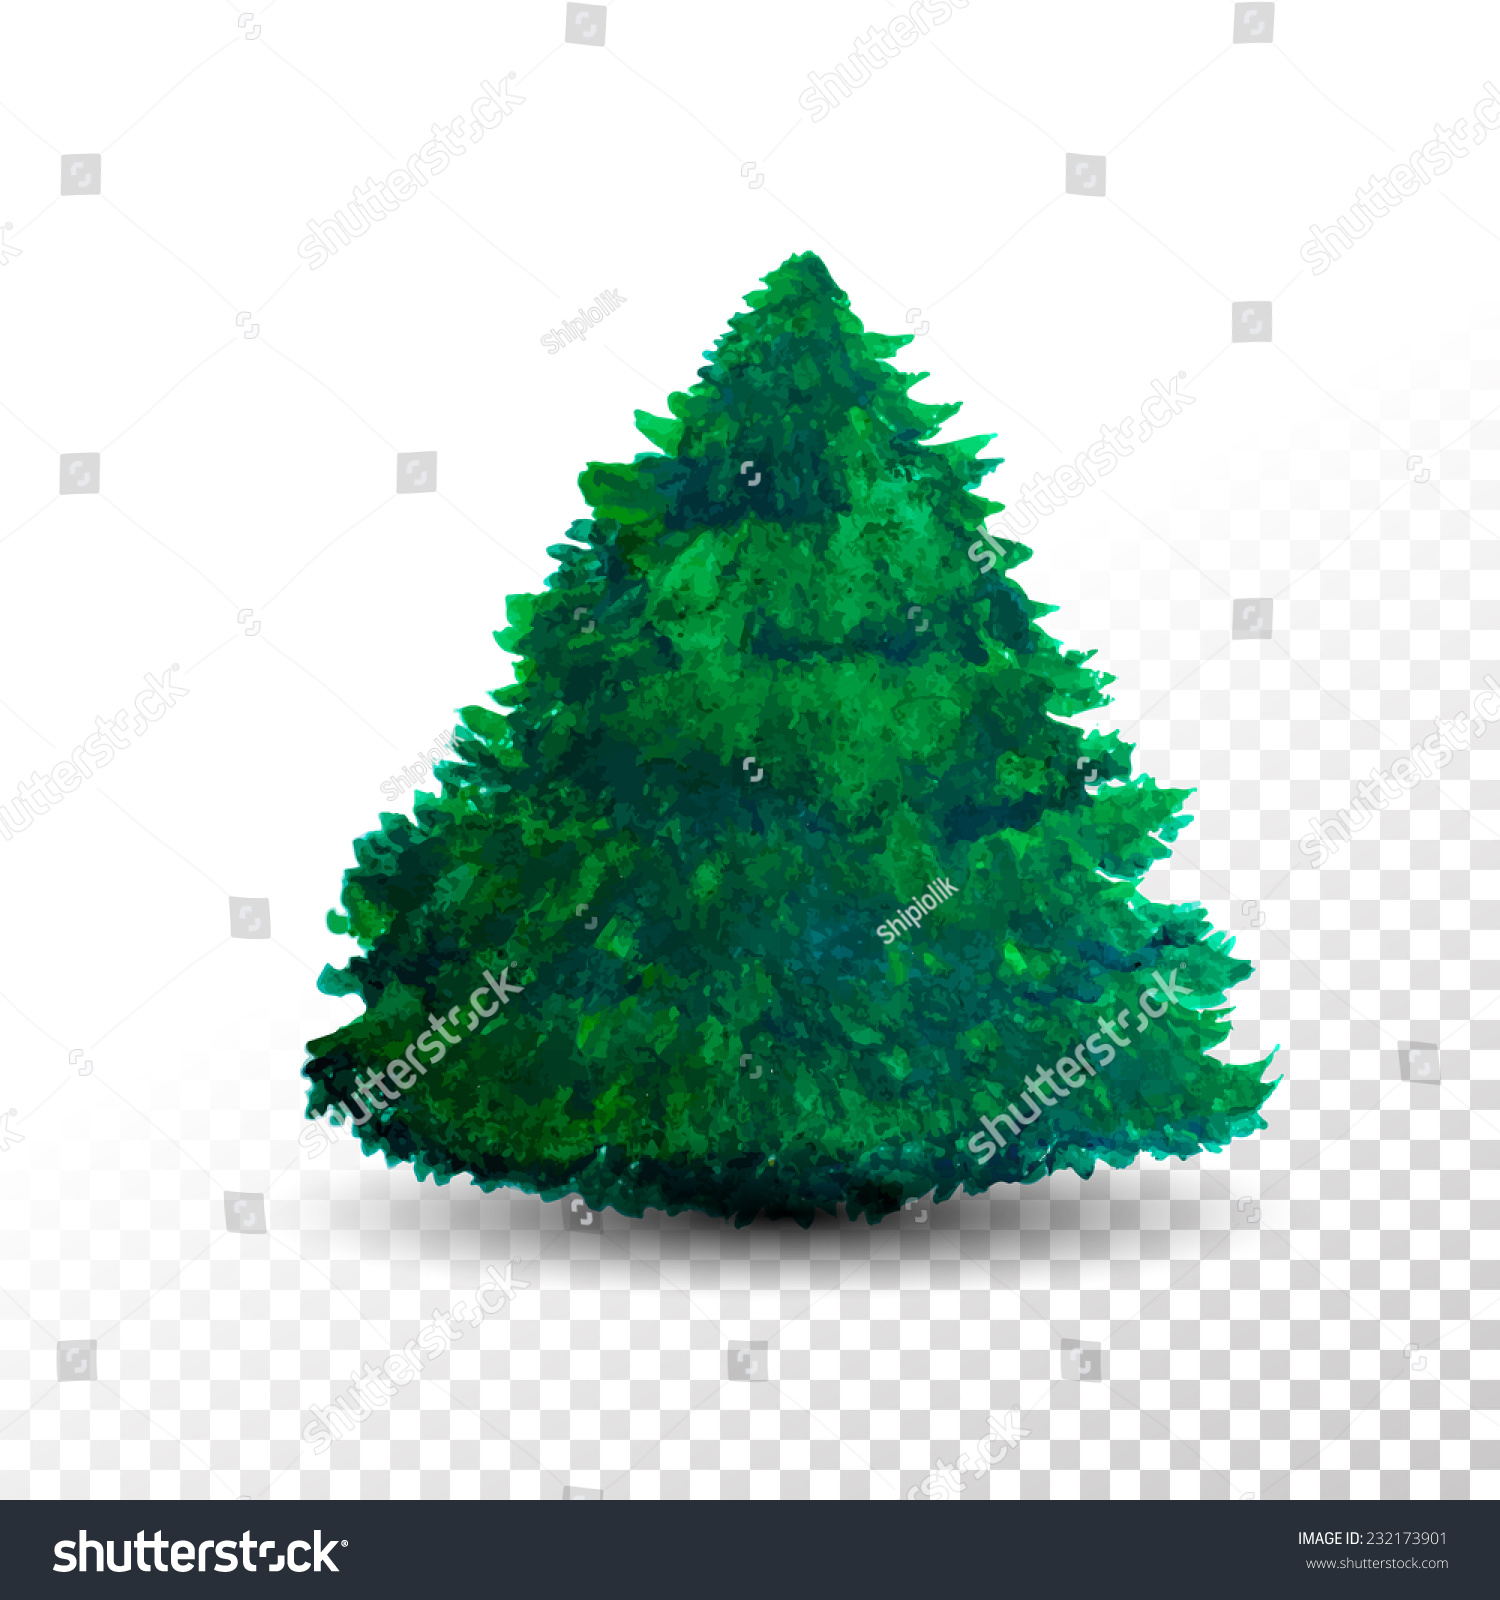 christmas tree isolated on transparent background watercolor vector illustration - Christmas Tree Transparent